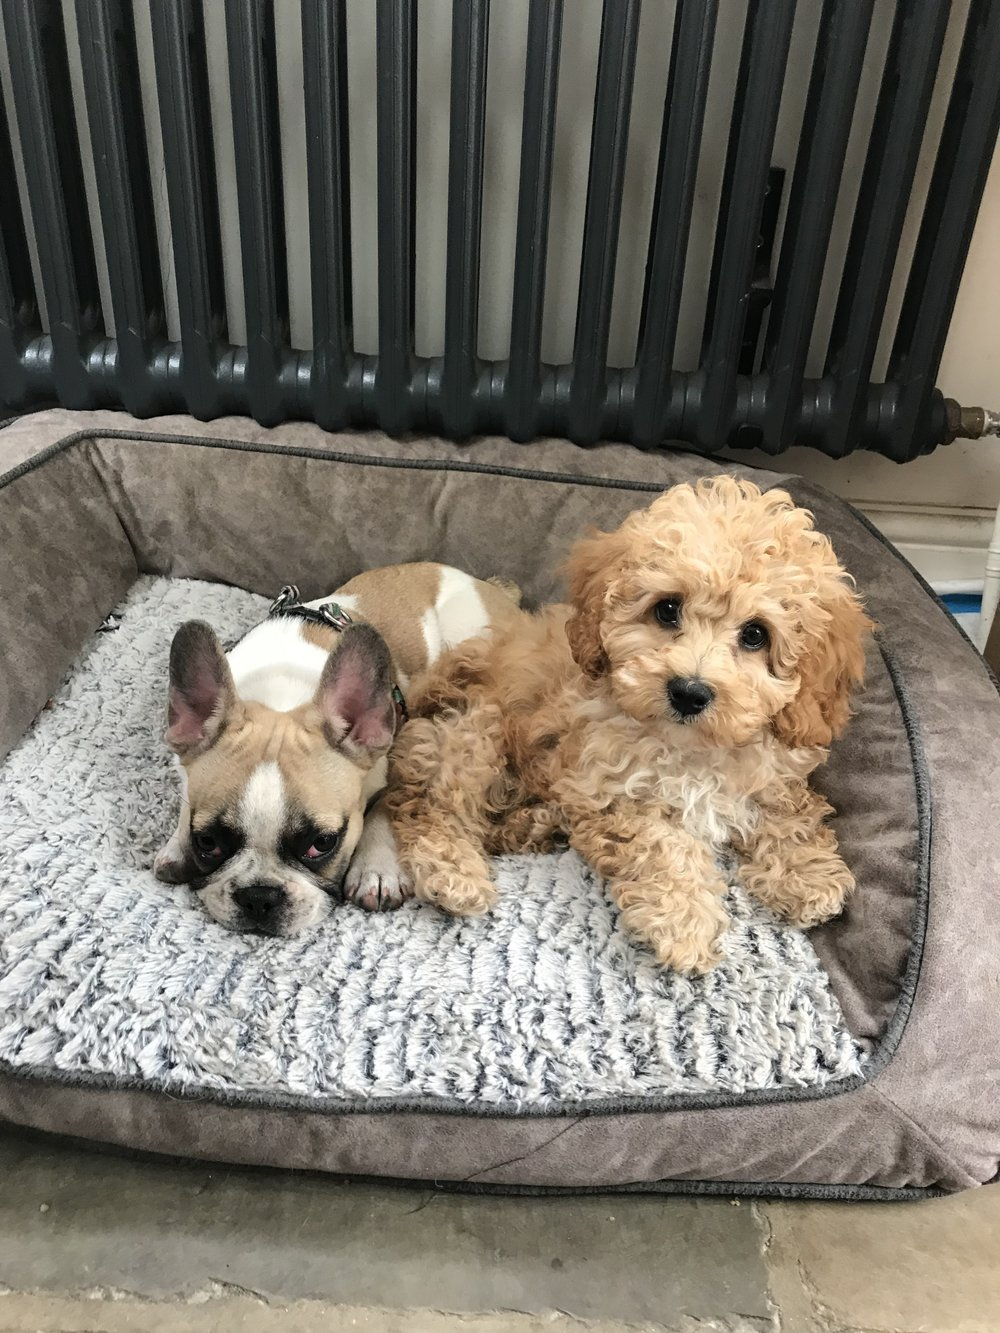 Puppies napping with their besties -  Juno and Agatha 12 weeks old